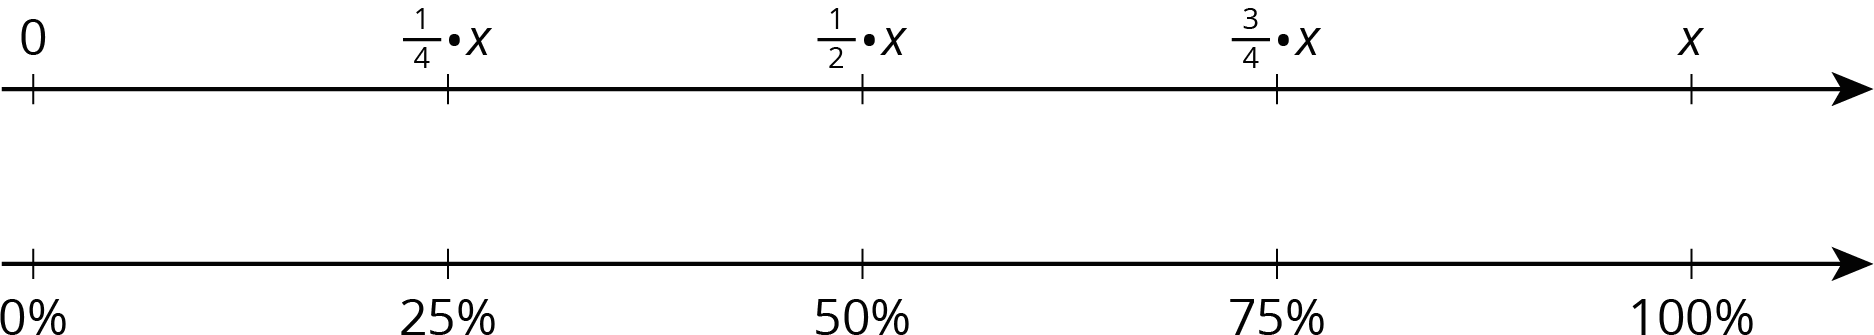 A double number line with 5 evenly spaced tick marks. The tick marks on the top number line are labeled 0, one fourth times x, one half times x, three fourths times x, and x. The tick marks on the bottom number line are labeled 0 percent, 25 percent, 50 percent, 75 percent, and 100 percent.